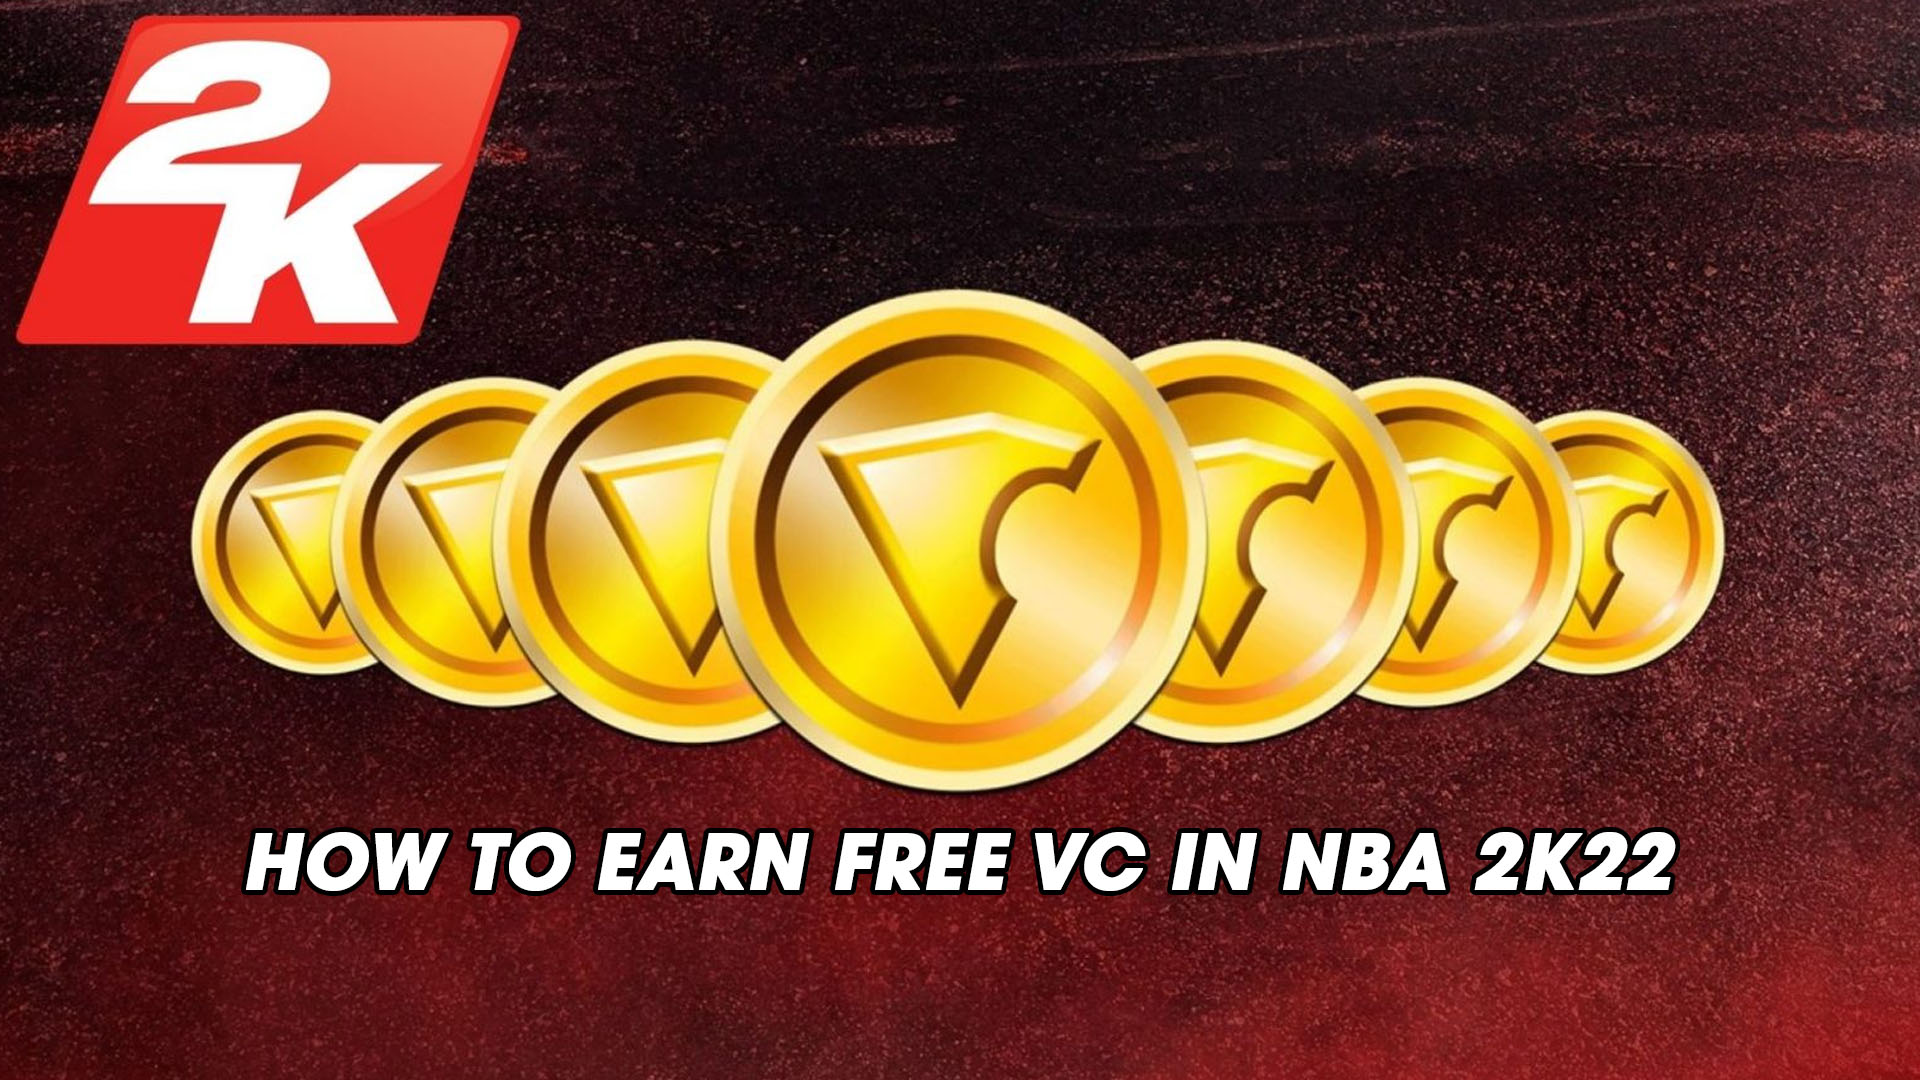 How to earn free VC in NBA 2K22